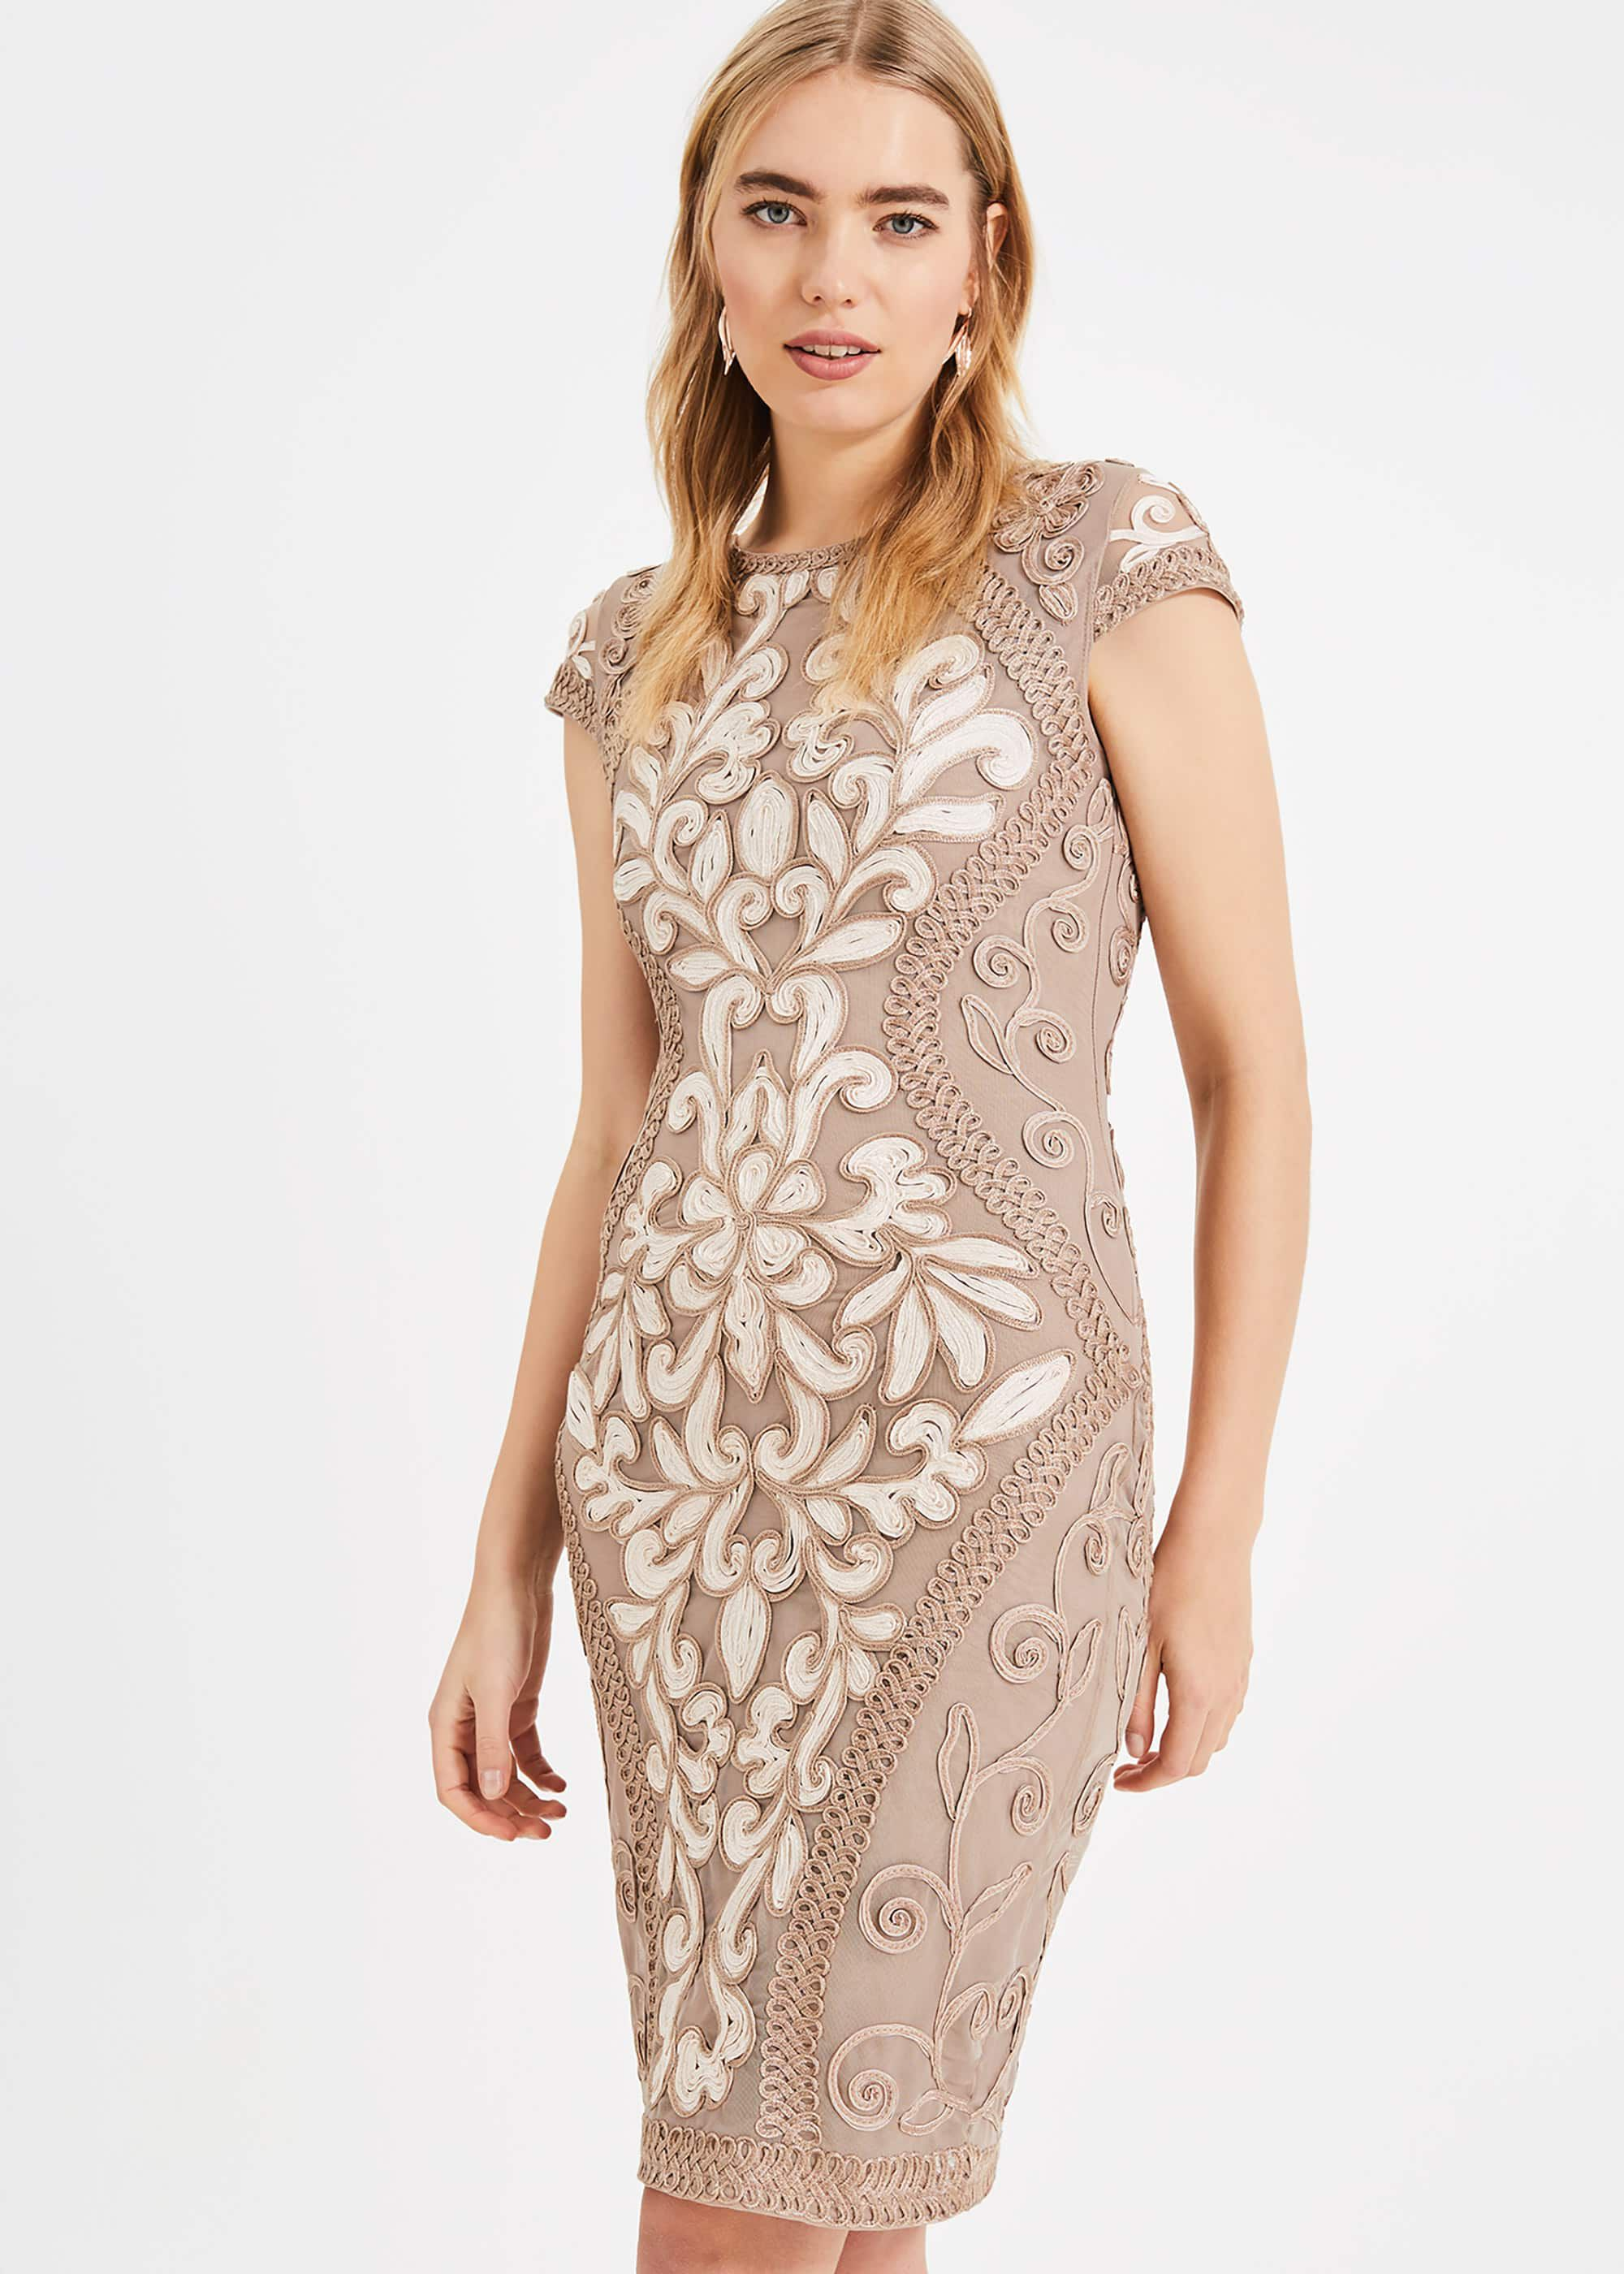 Phase Eight Perdy Tapework Dress, Cream, Fitted, Occasion Dress